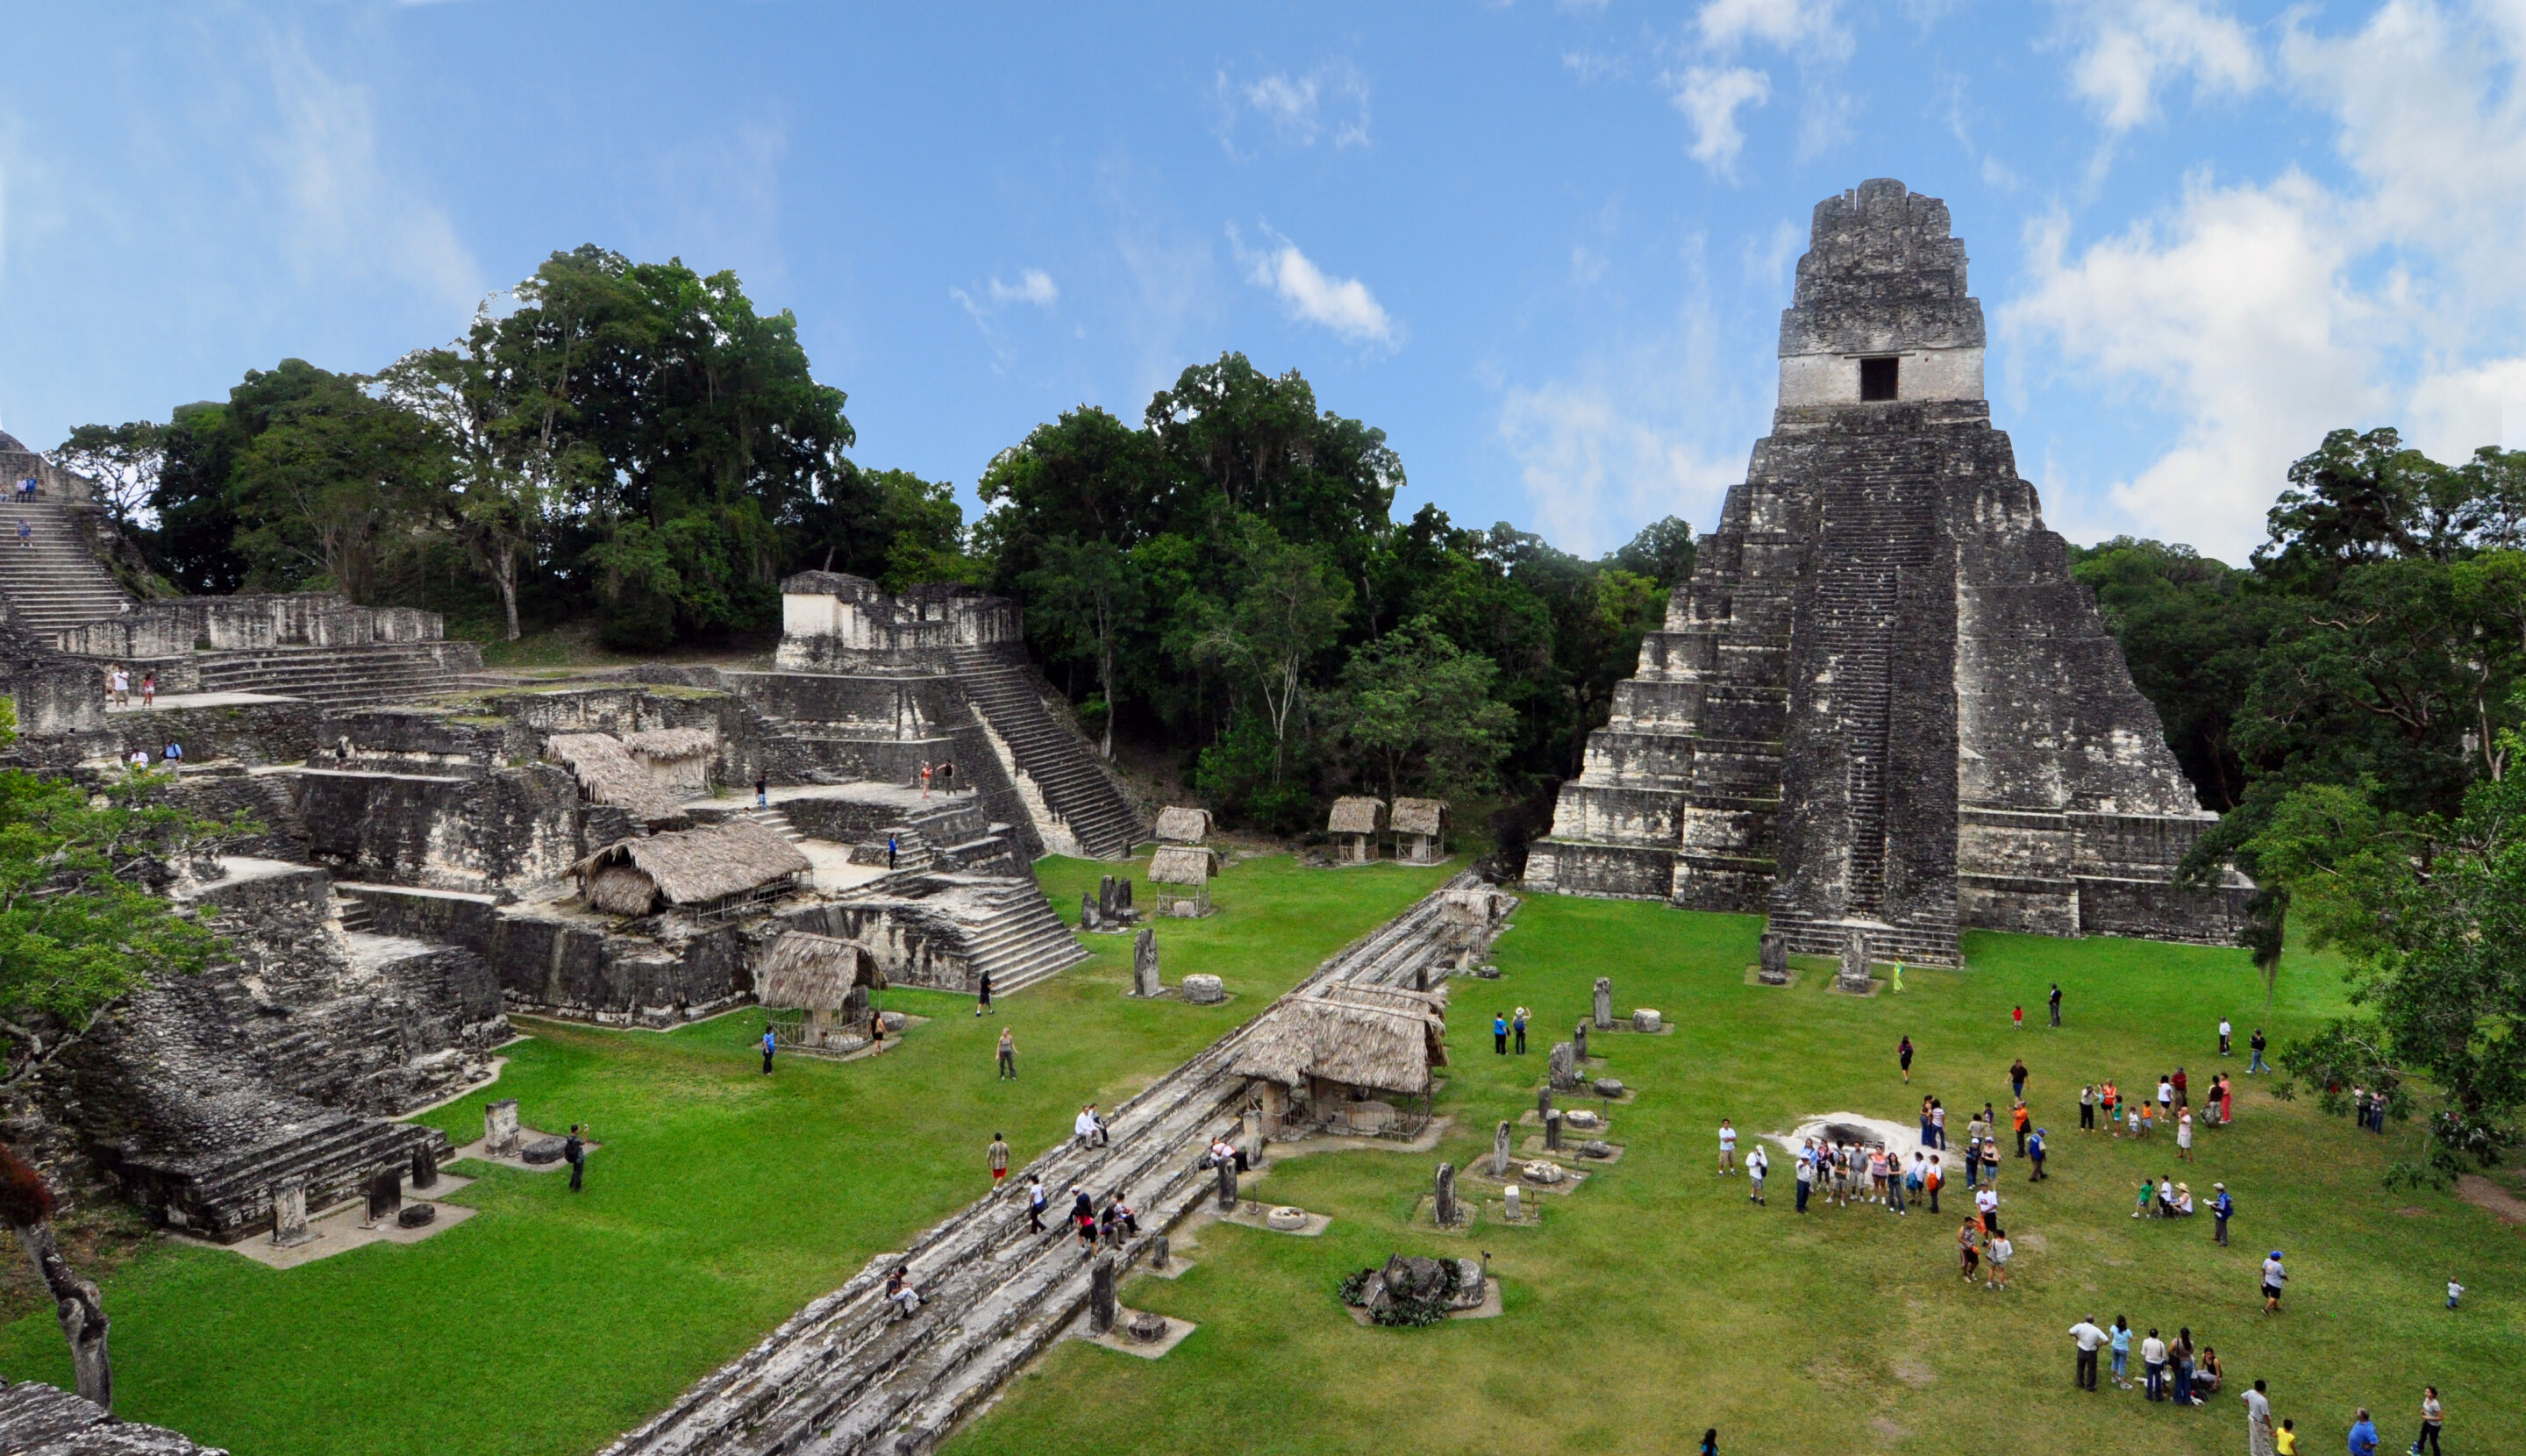 Maya rulers put their personal stamp on monumental complexes